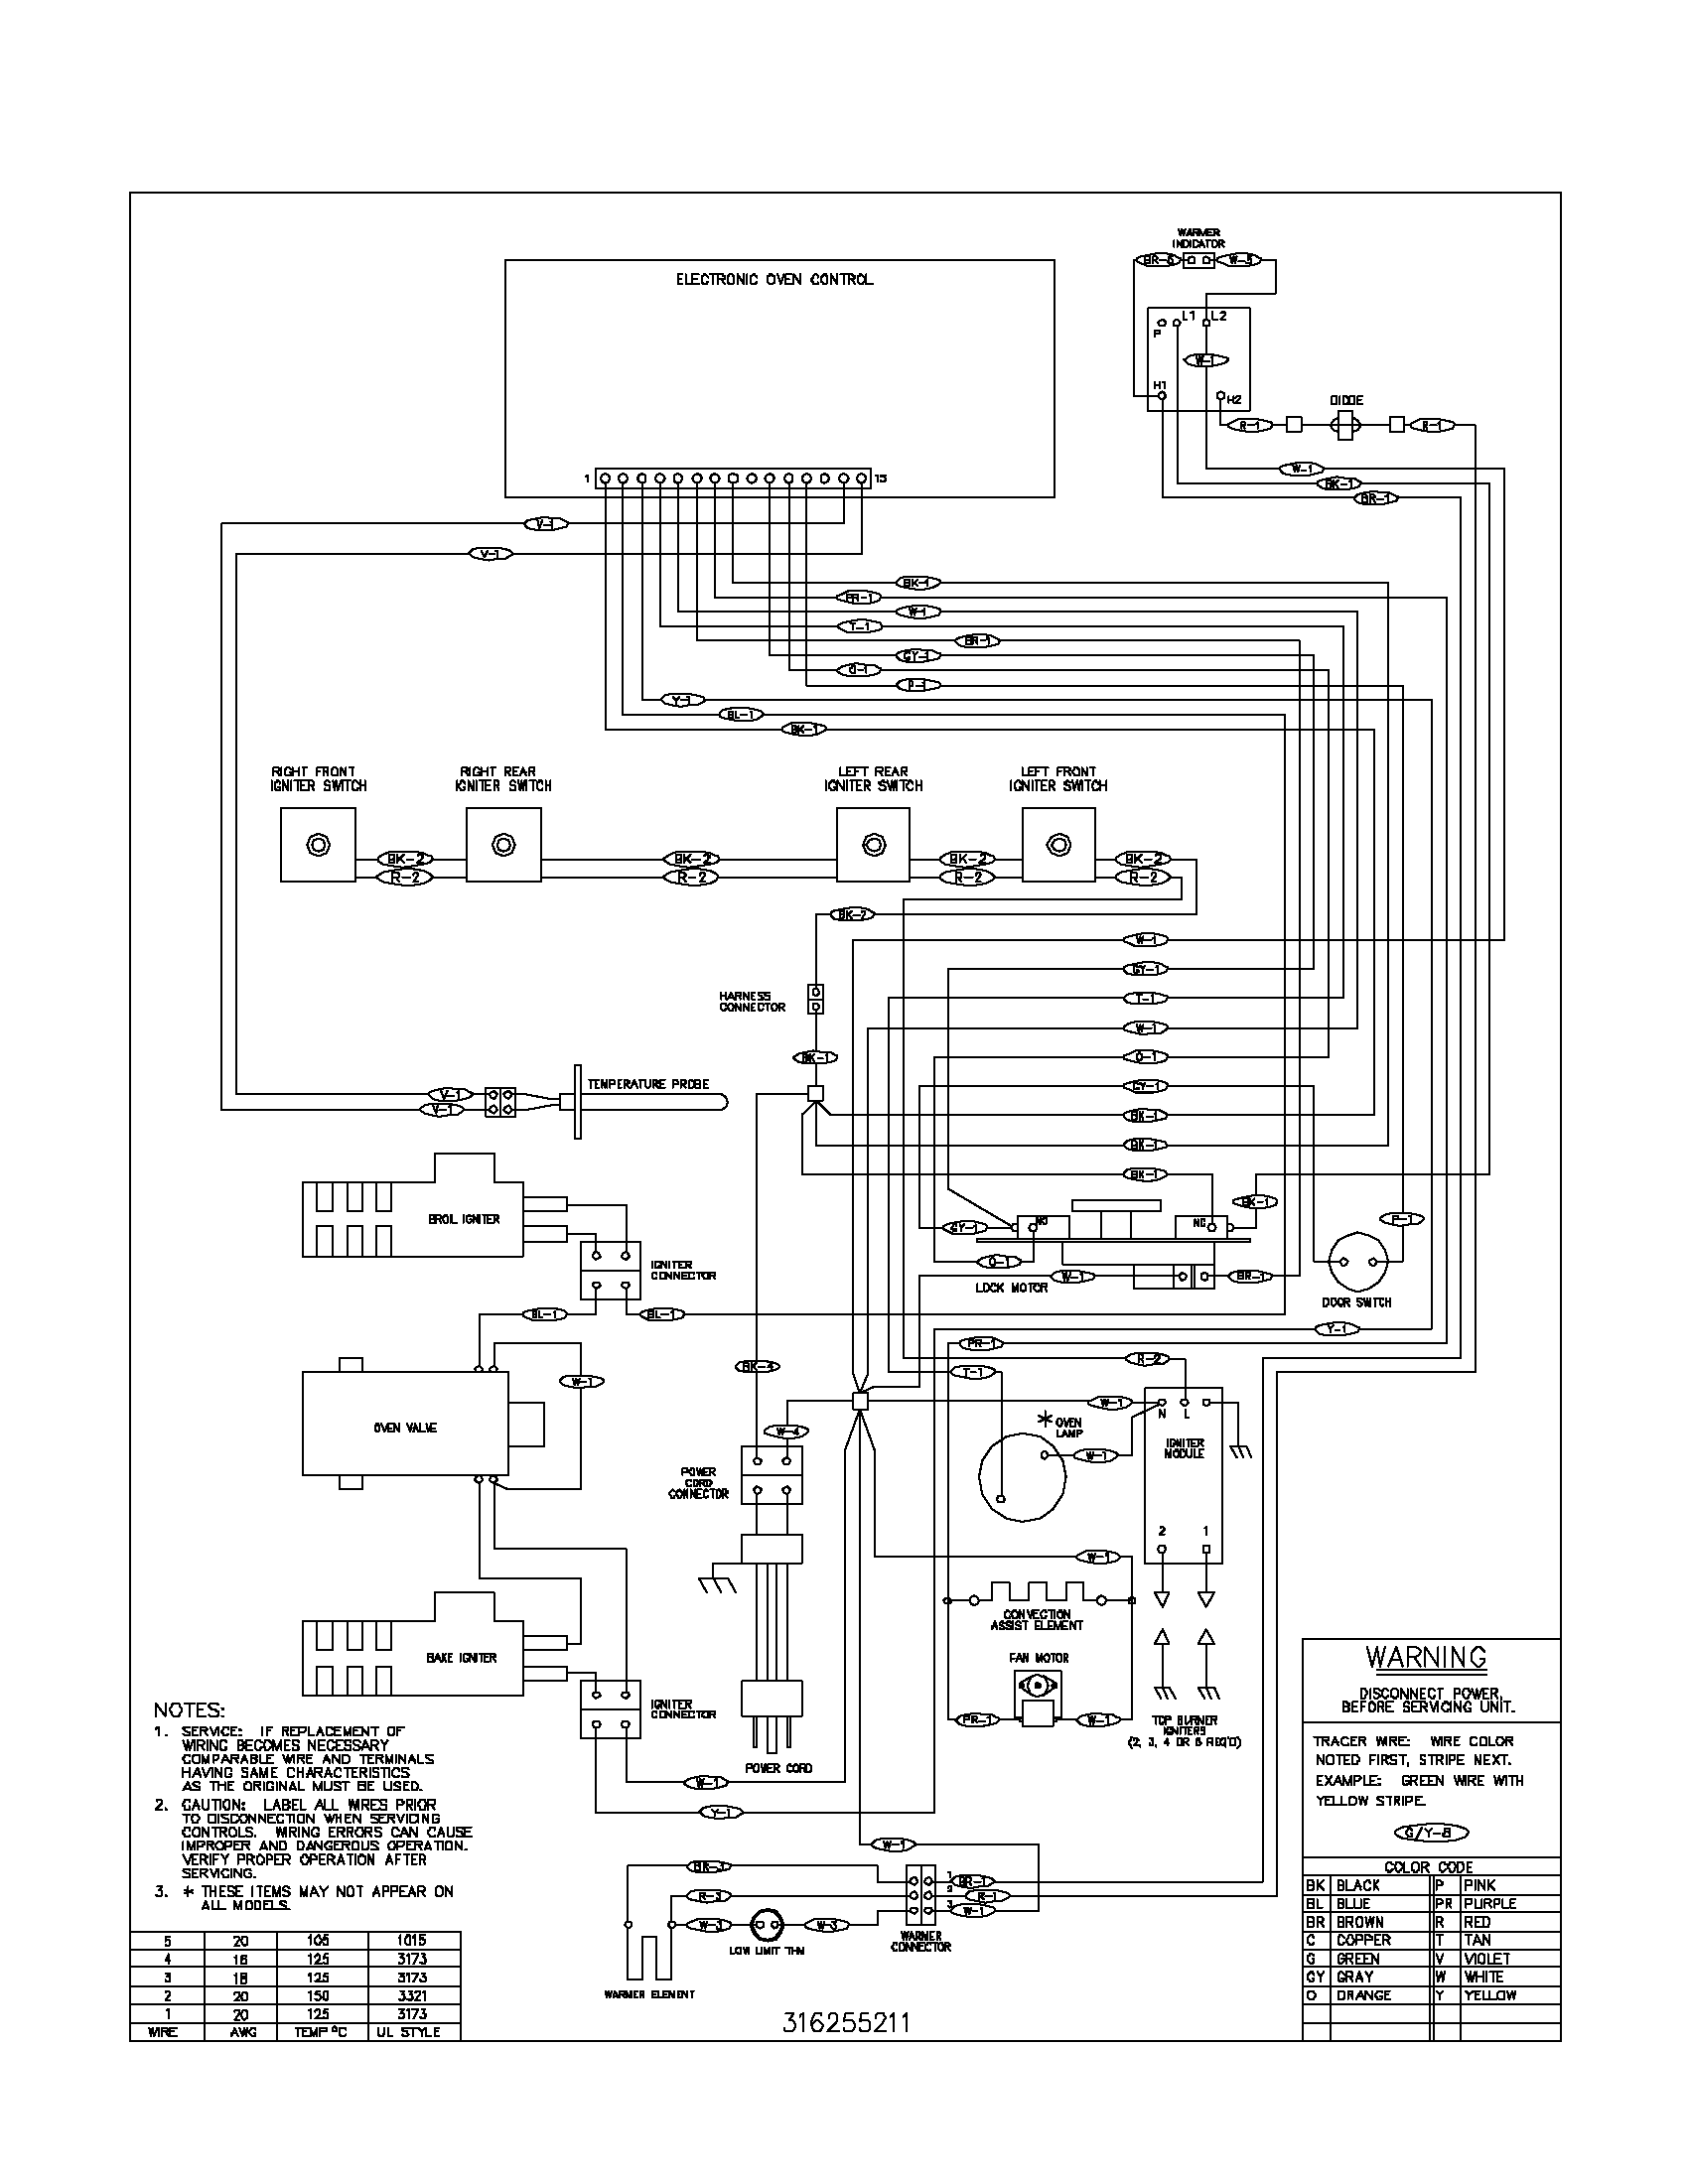 wiring diagram parts frigidaire dryer wiring diagram & frigidaire dryer wiring diagram wiring diagram for gler341as2 at edmiracle.co